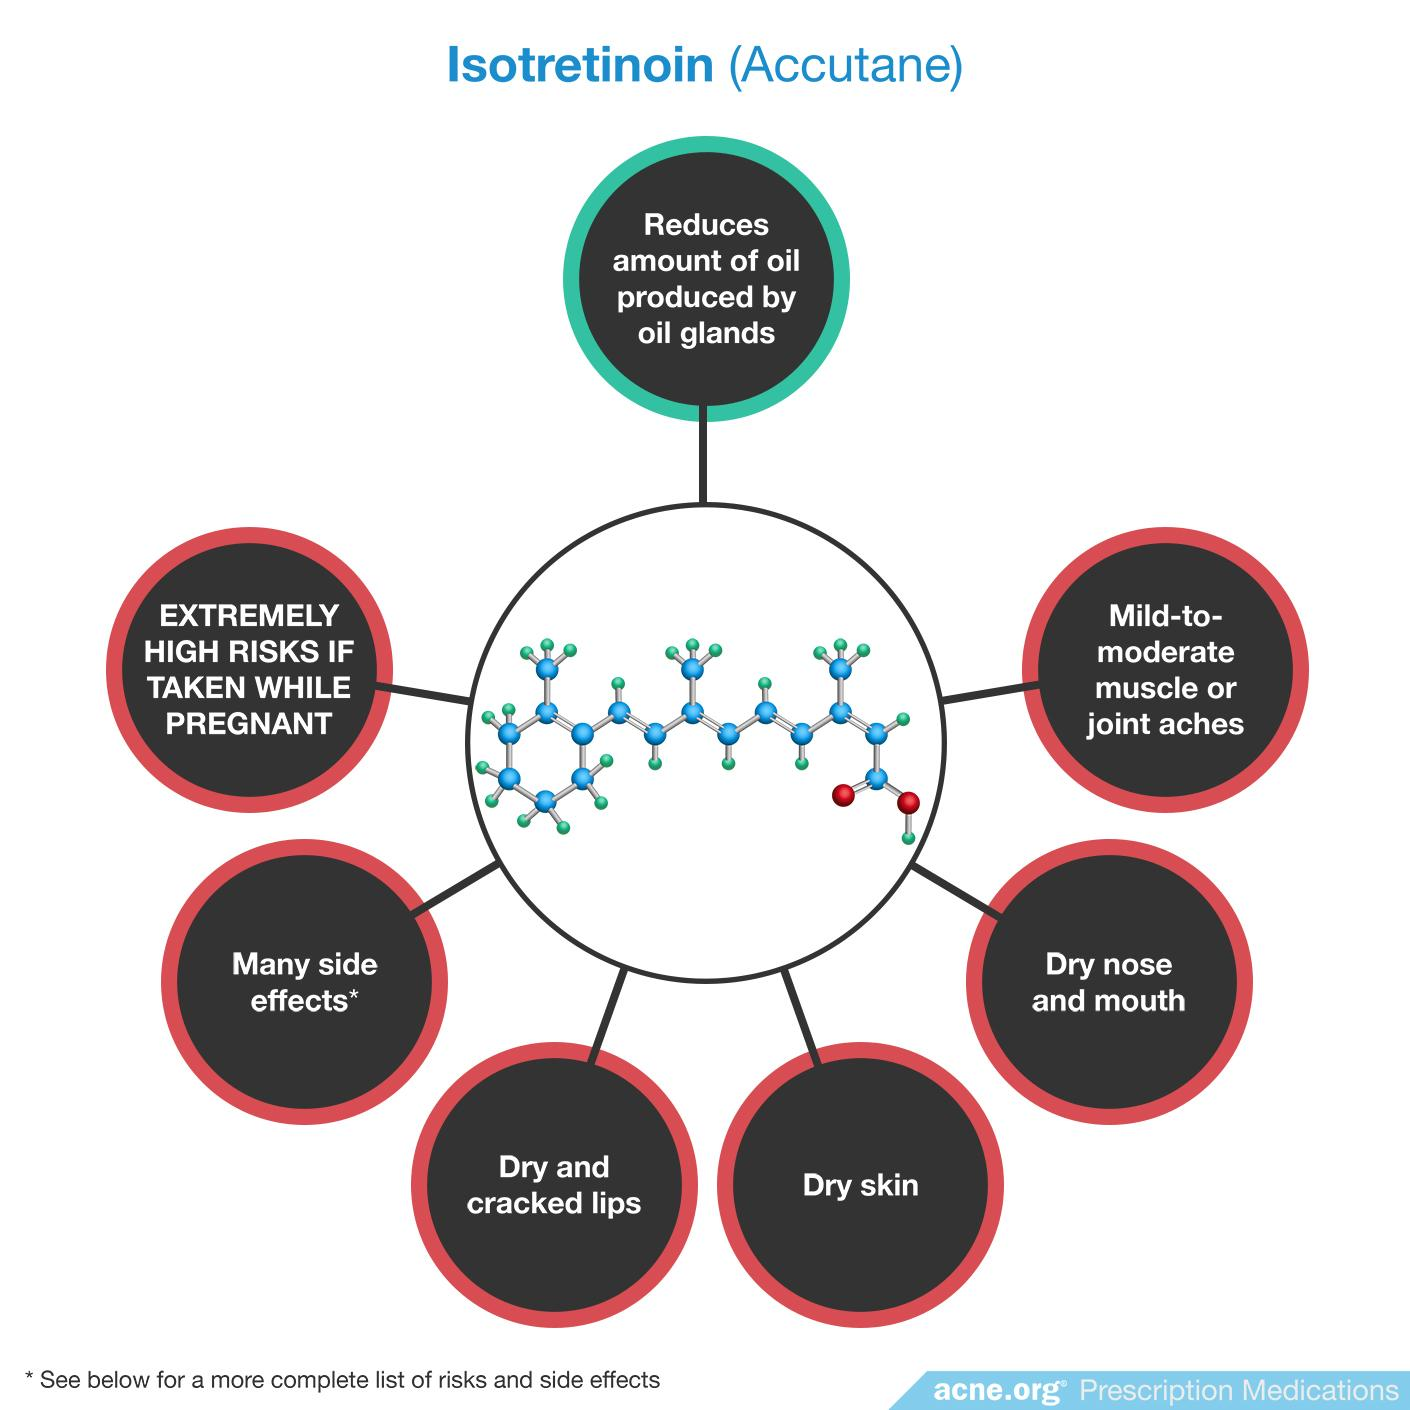 Isotretinoin (Accutane) Effects/Side Effects